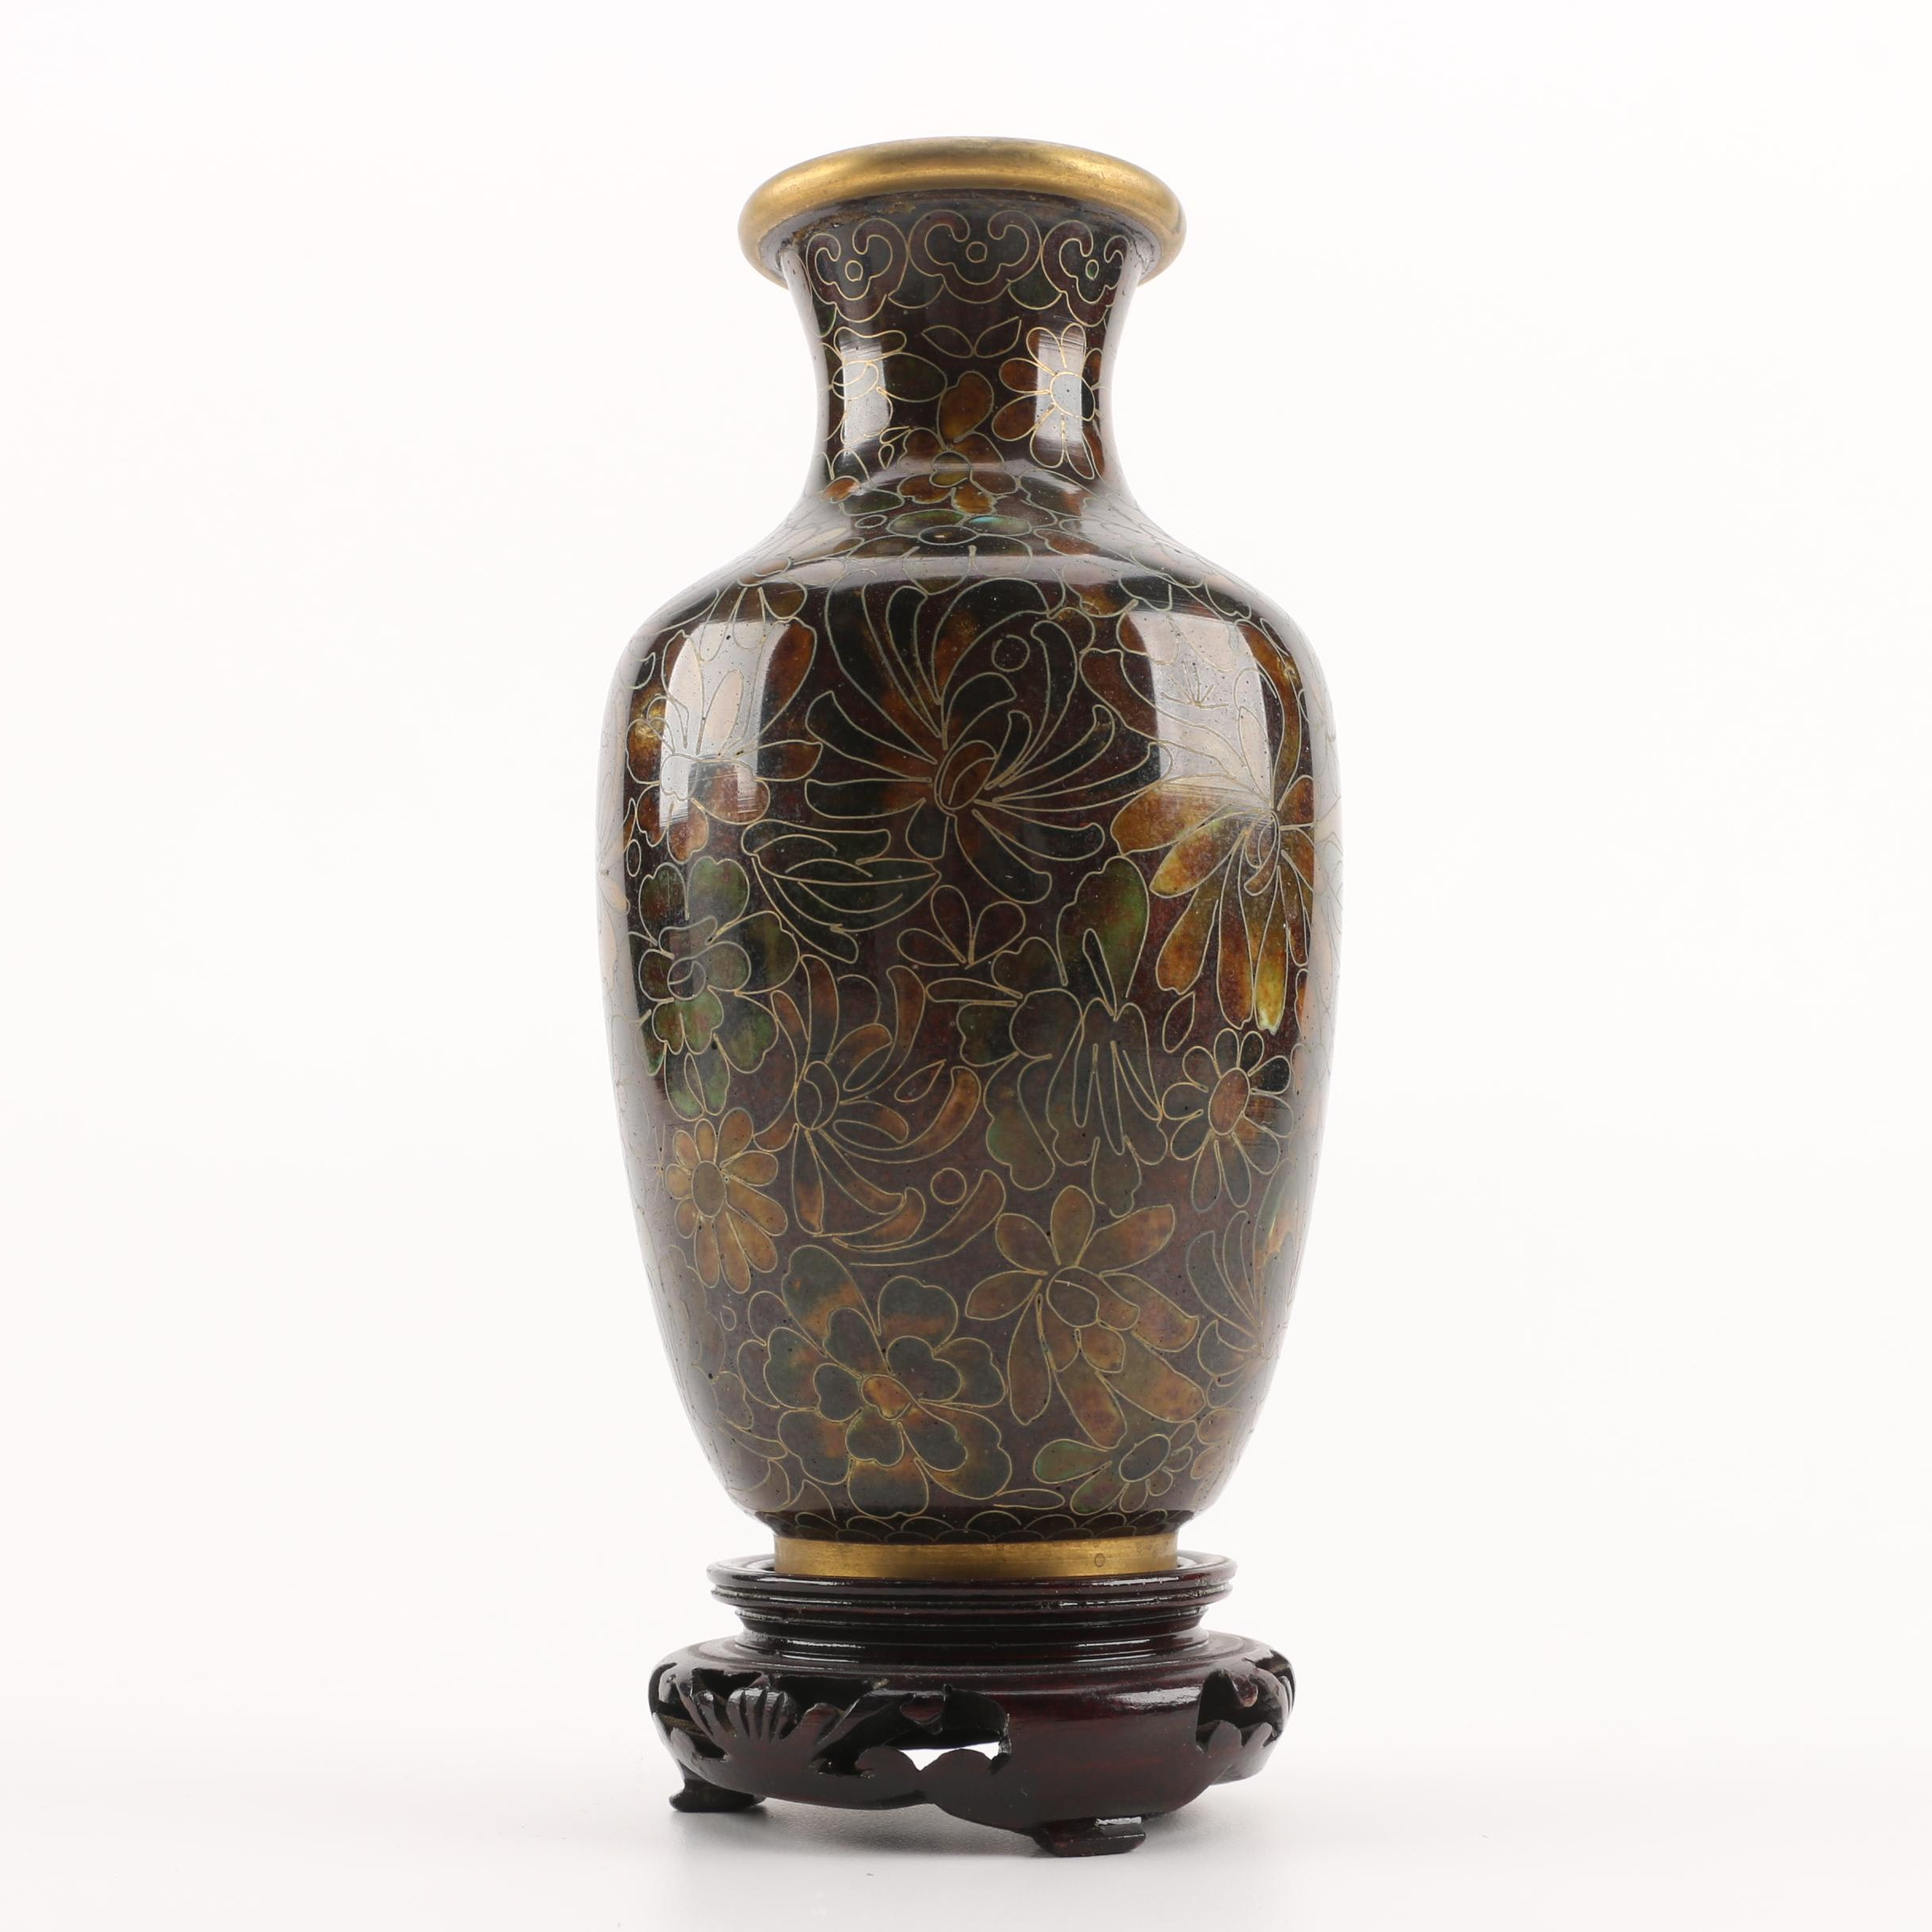 Japanese Cloisonné Floral Vase with Wooden Stand